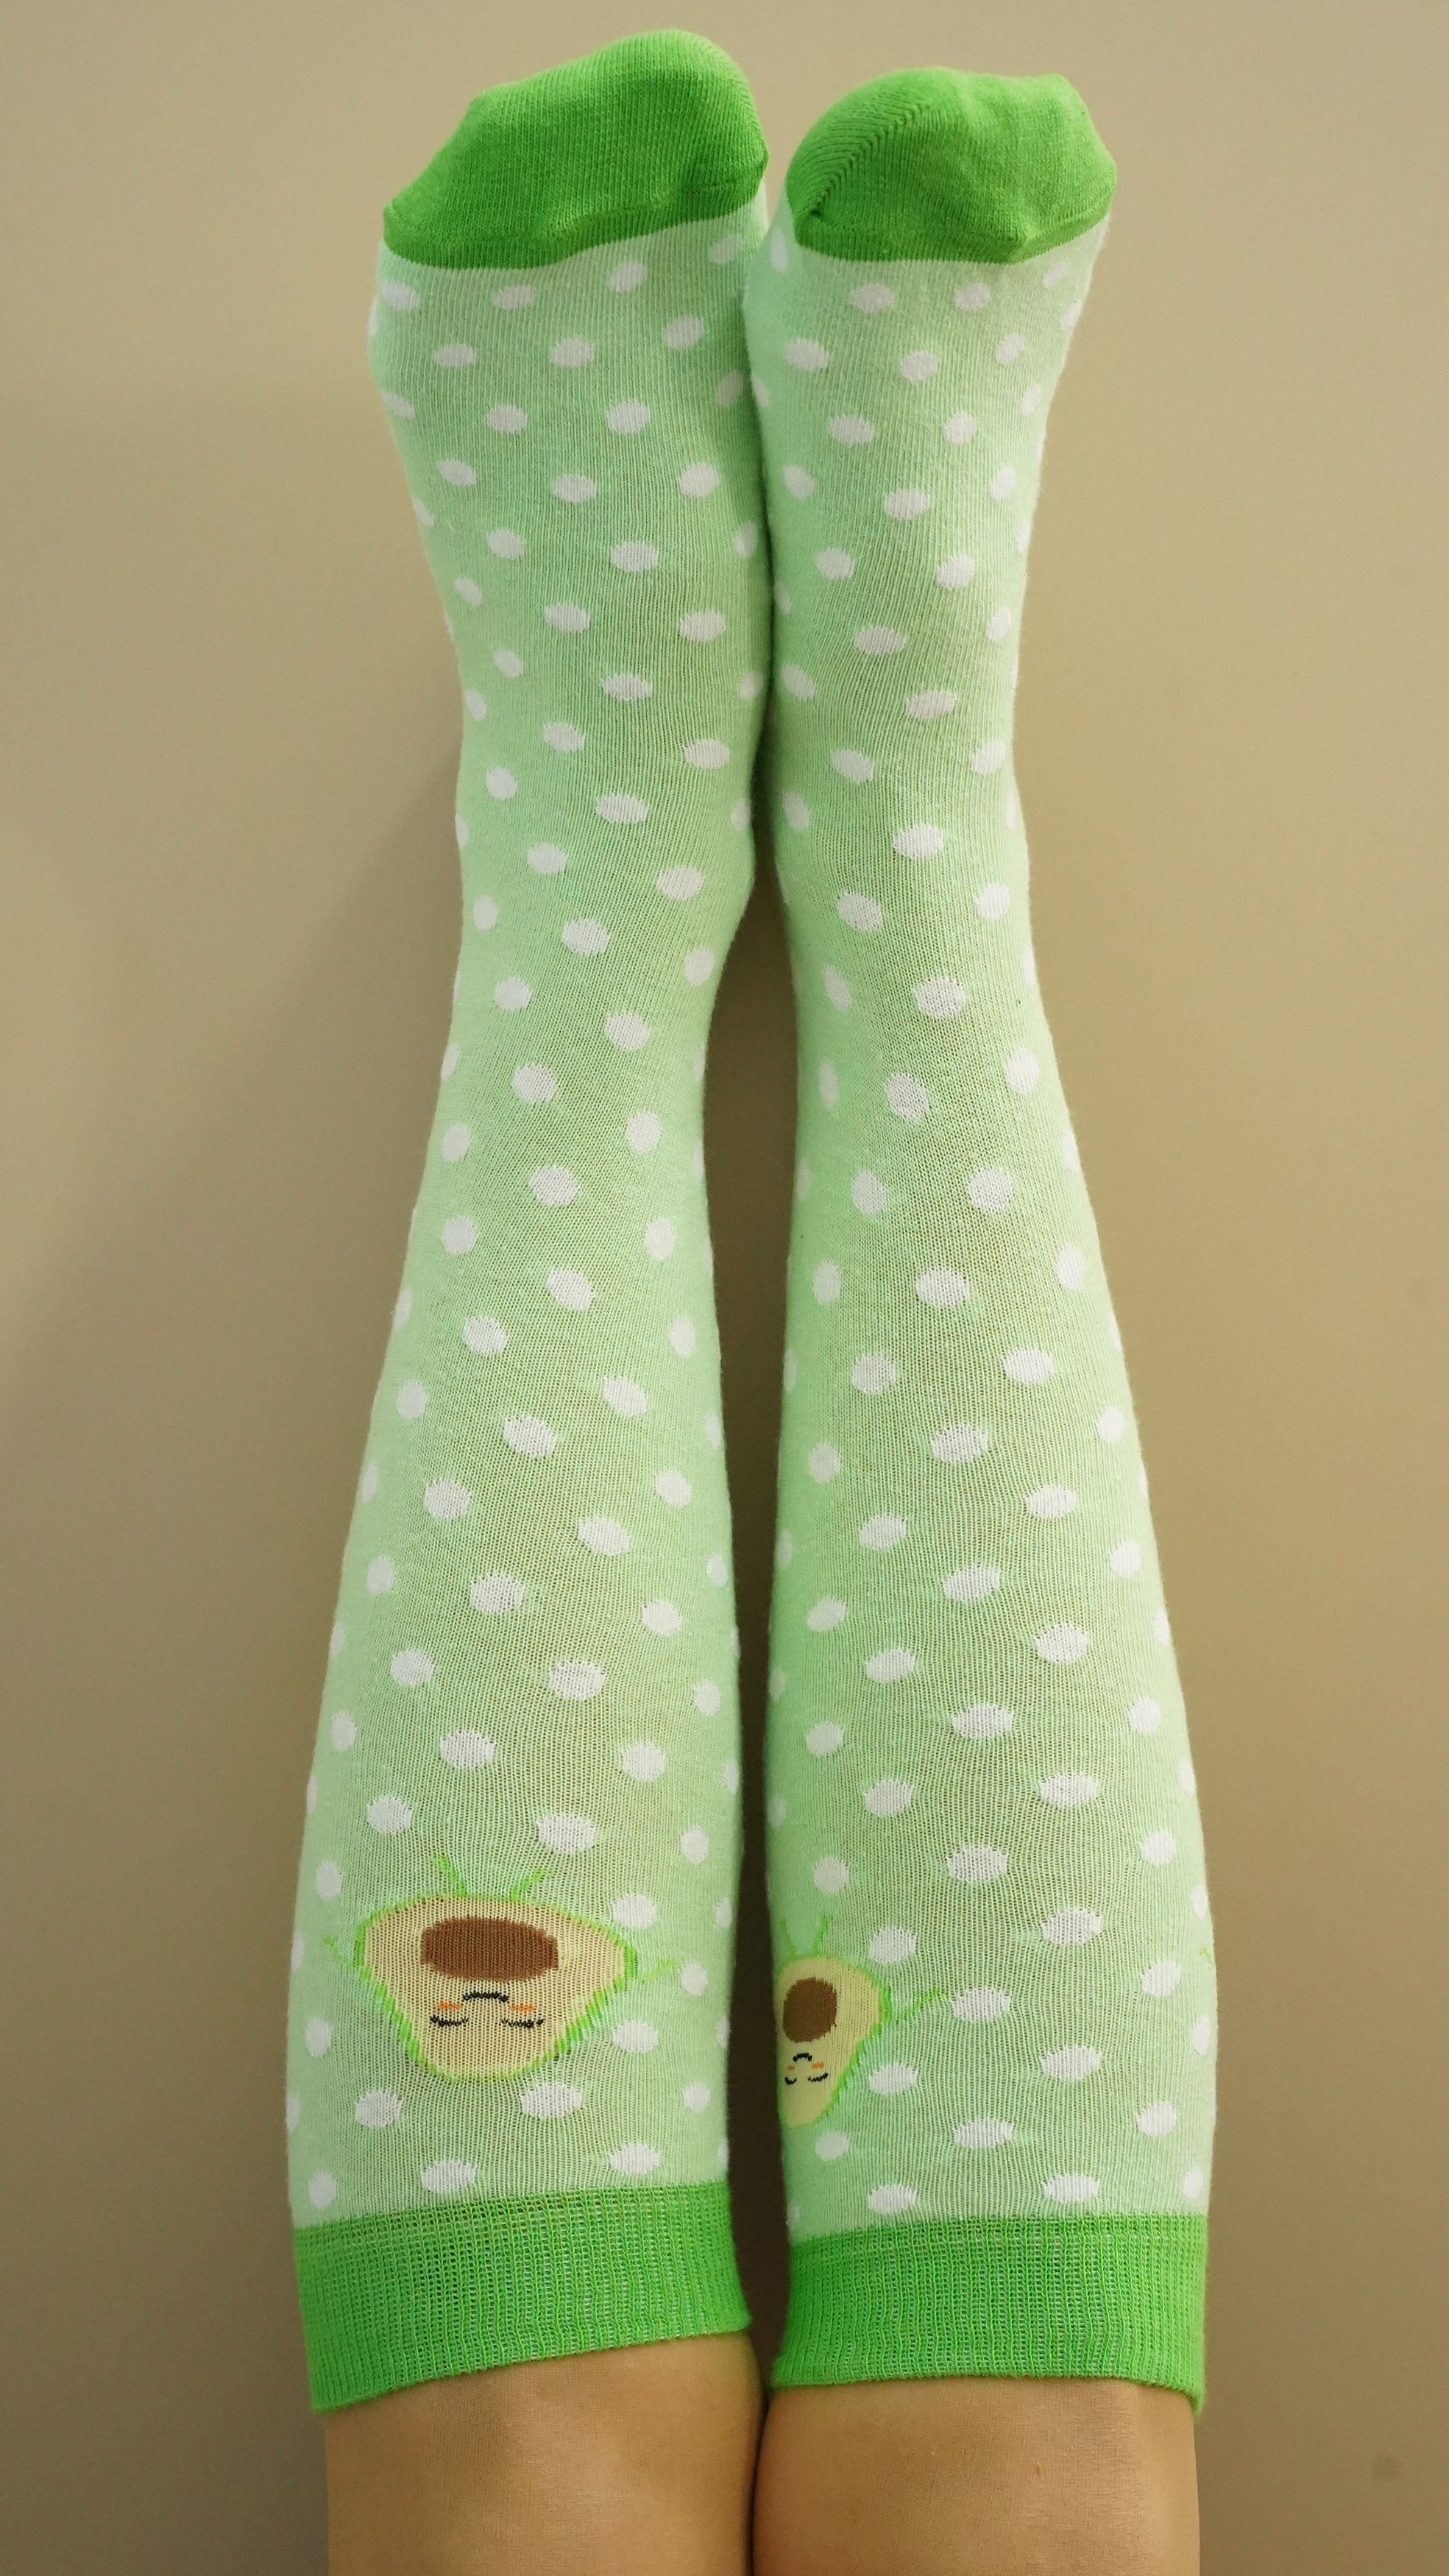 Women's Avocado Dot Knee High Socks